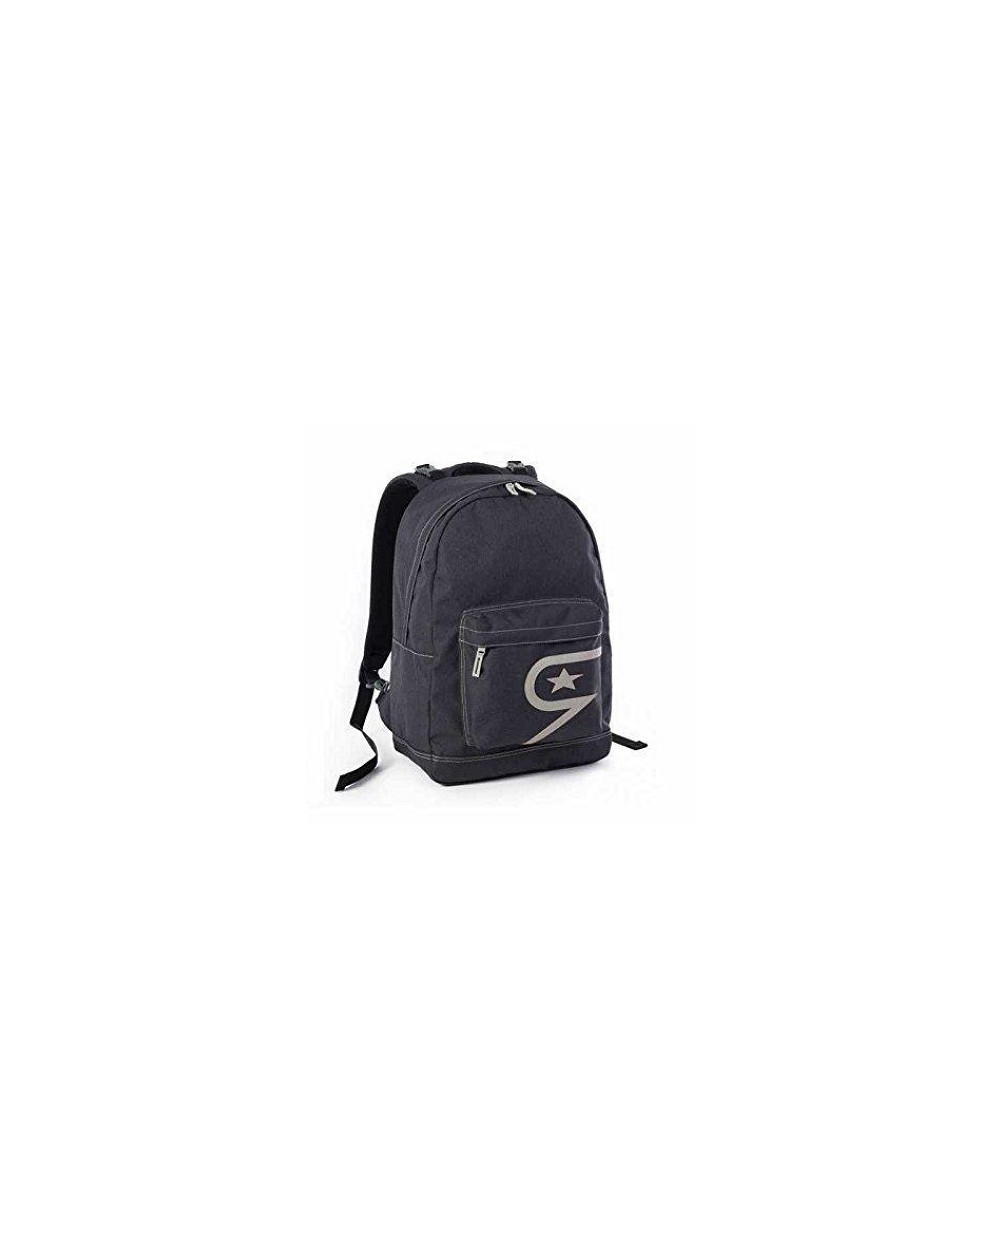 ZAINO SEVEN BACKPACK 1SIDE